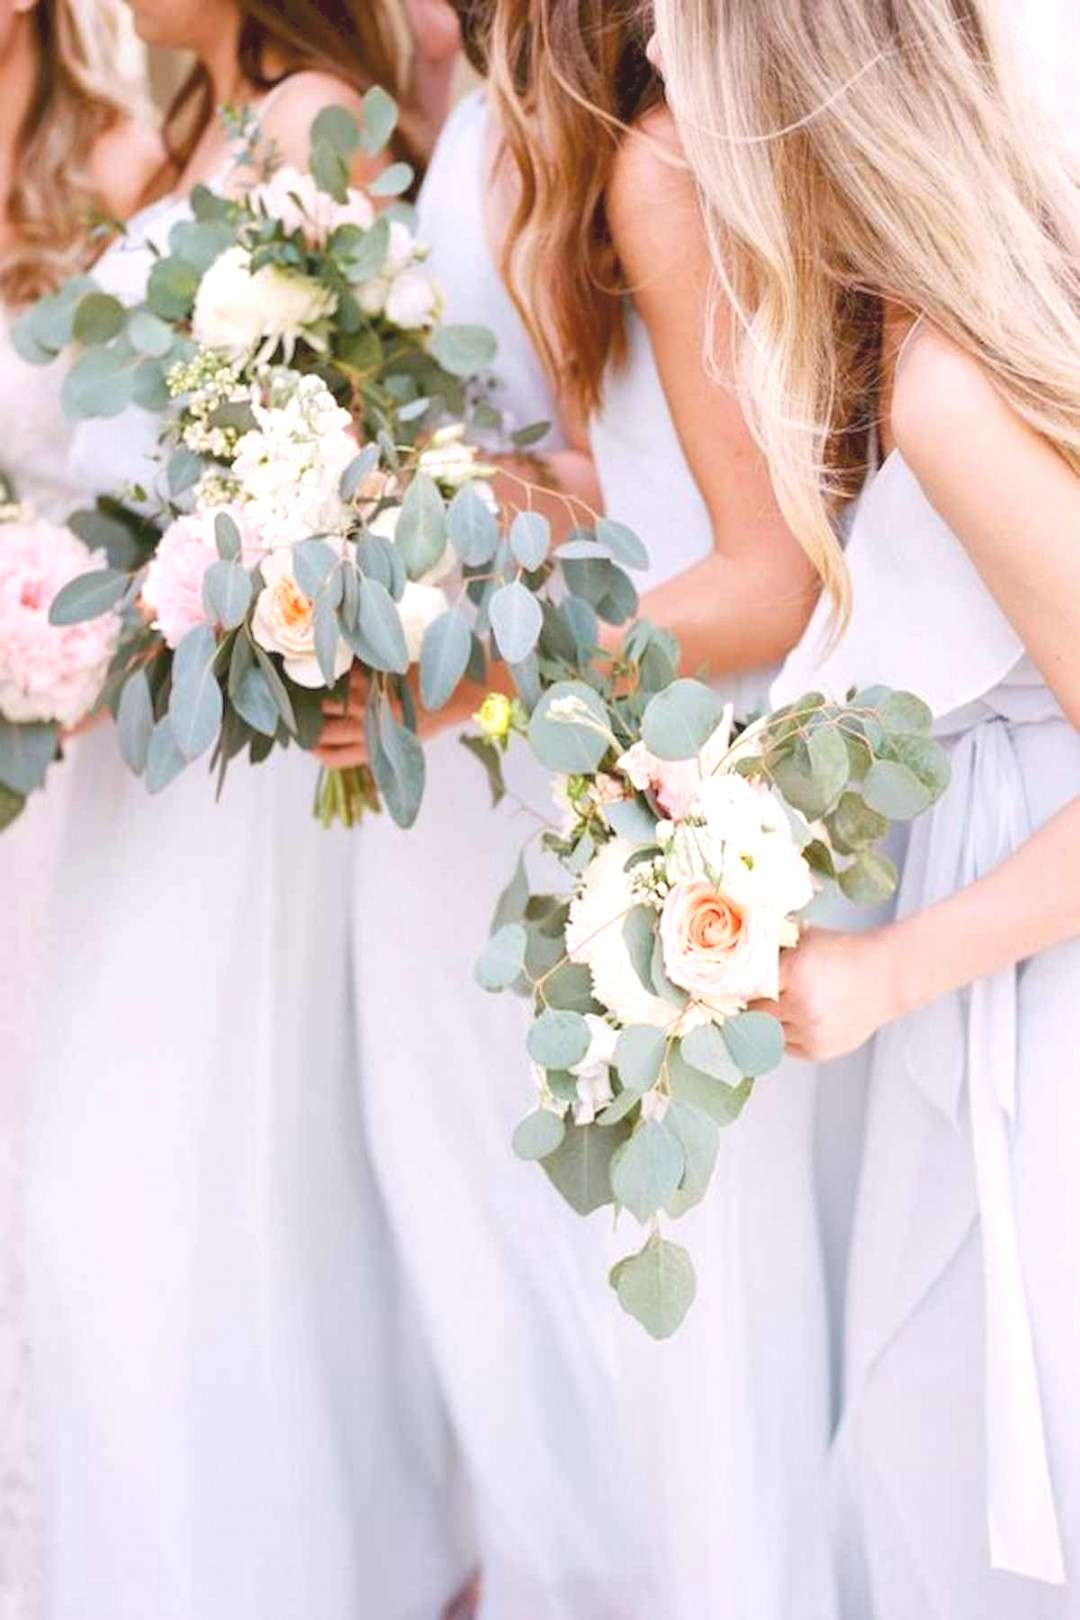 50 Beautiful Spring Bridesmaid Bouquets for Wedding Ideas 16 50 Beautiful Spring Bridesmaid Bouquet